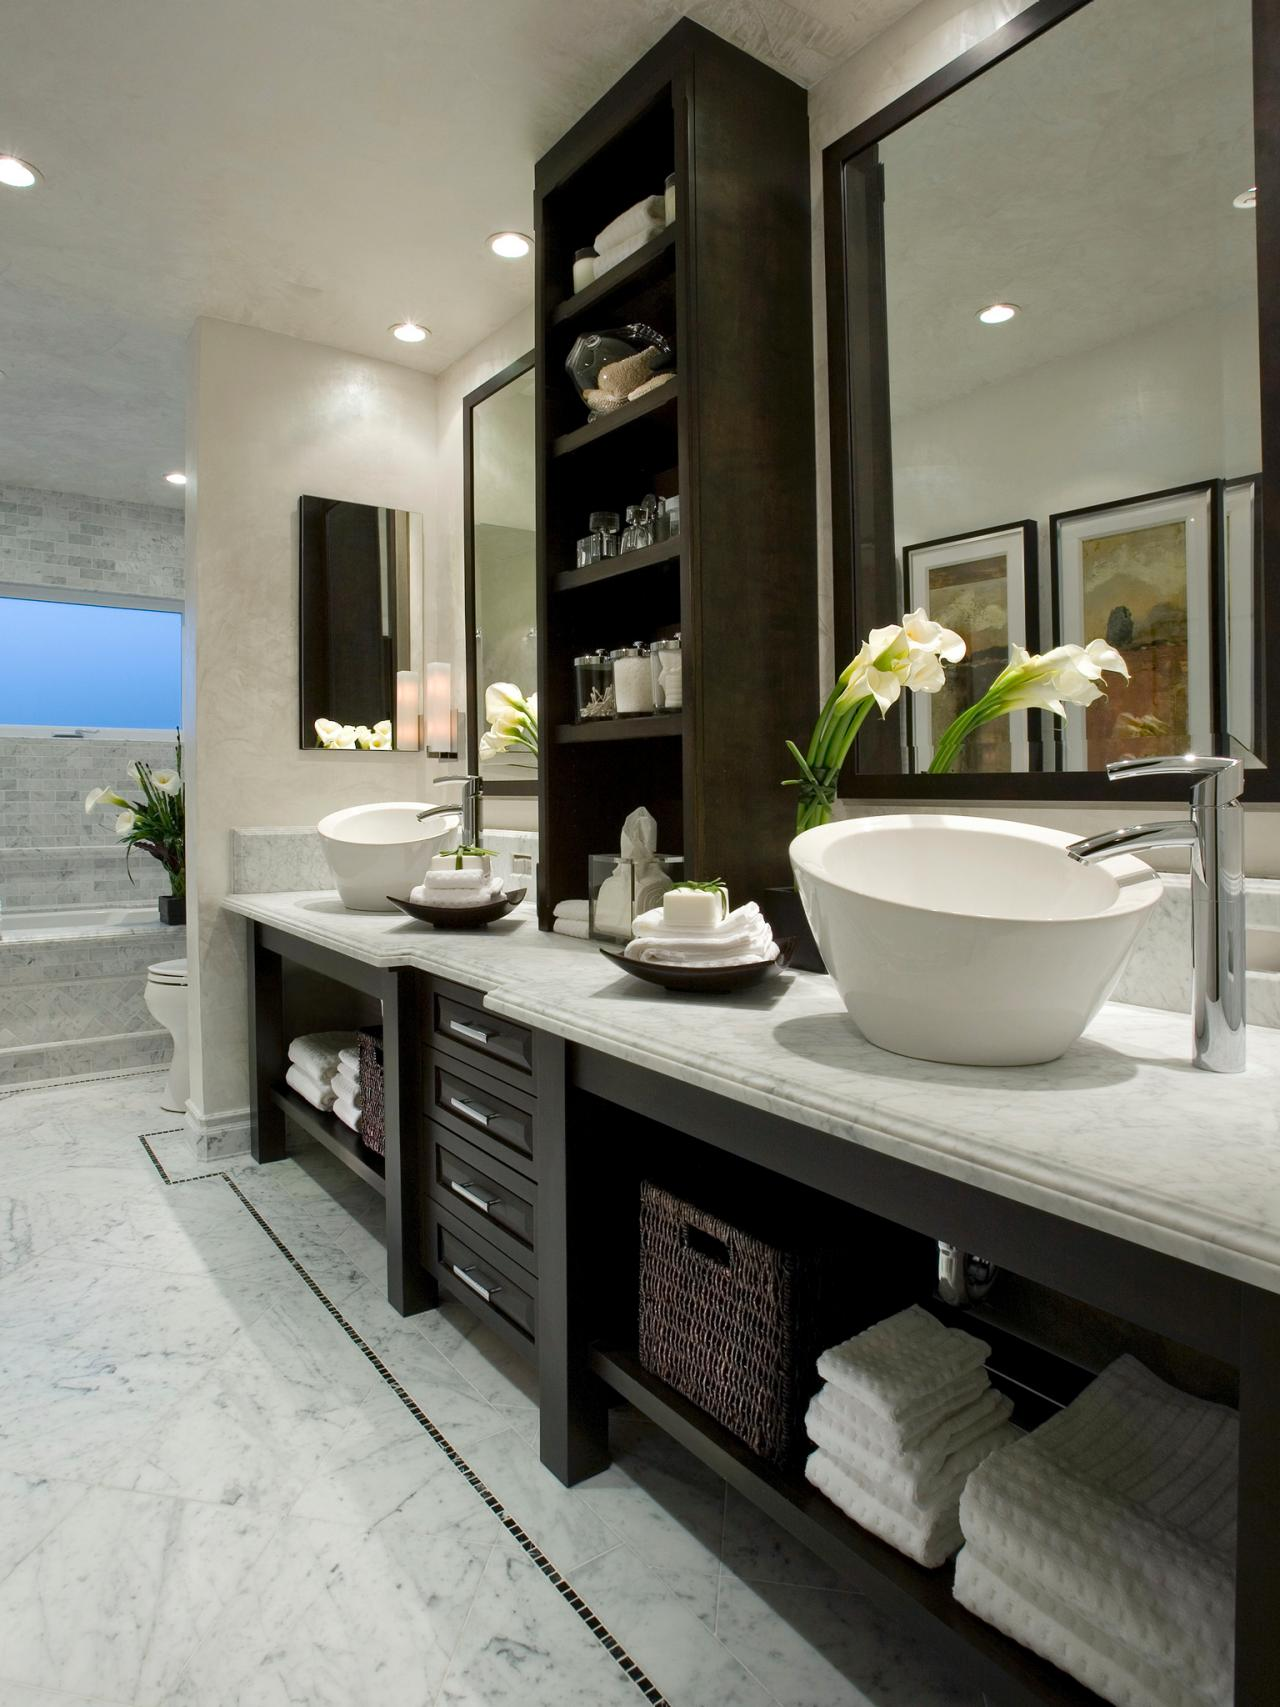 Modern Bathroom Design Ideas Pictures Tips From Hgtv: Nicole Miller Home Decor